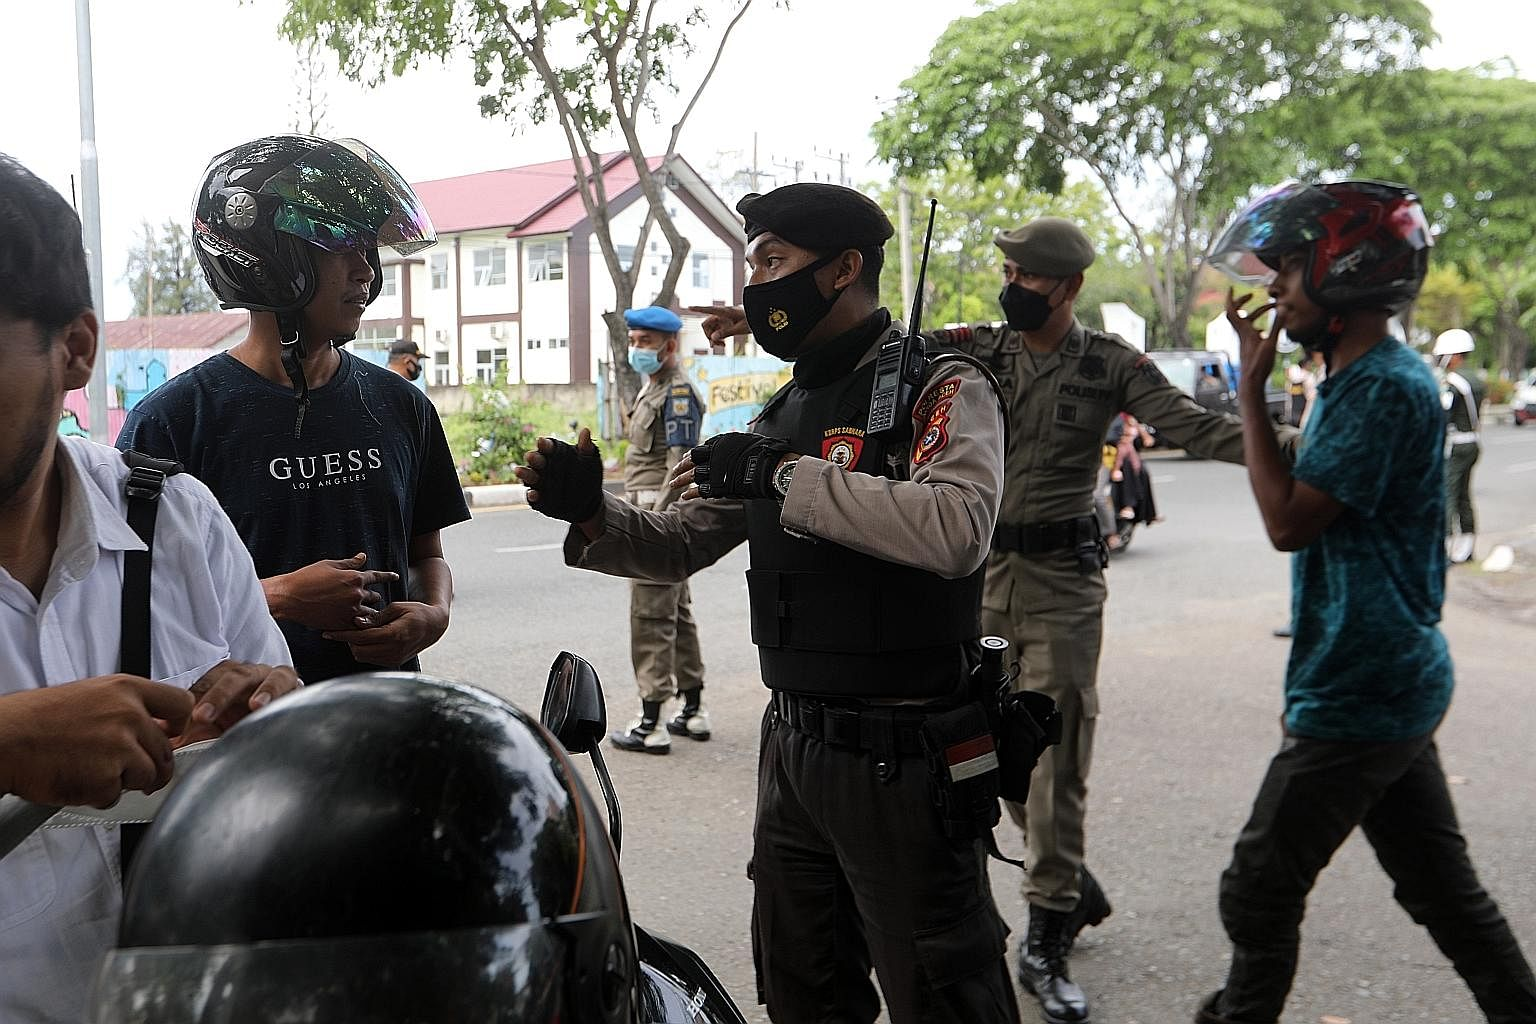 Aceh Joint Security Forces officers carrying out a security check and stopping motorists who failed to wear protective masks in public, in Banda Aceh, Indonesia, yesterday. A health worker administering the Sinovac Covid-19 vaccine at a shopping cent